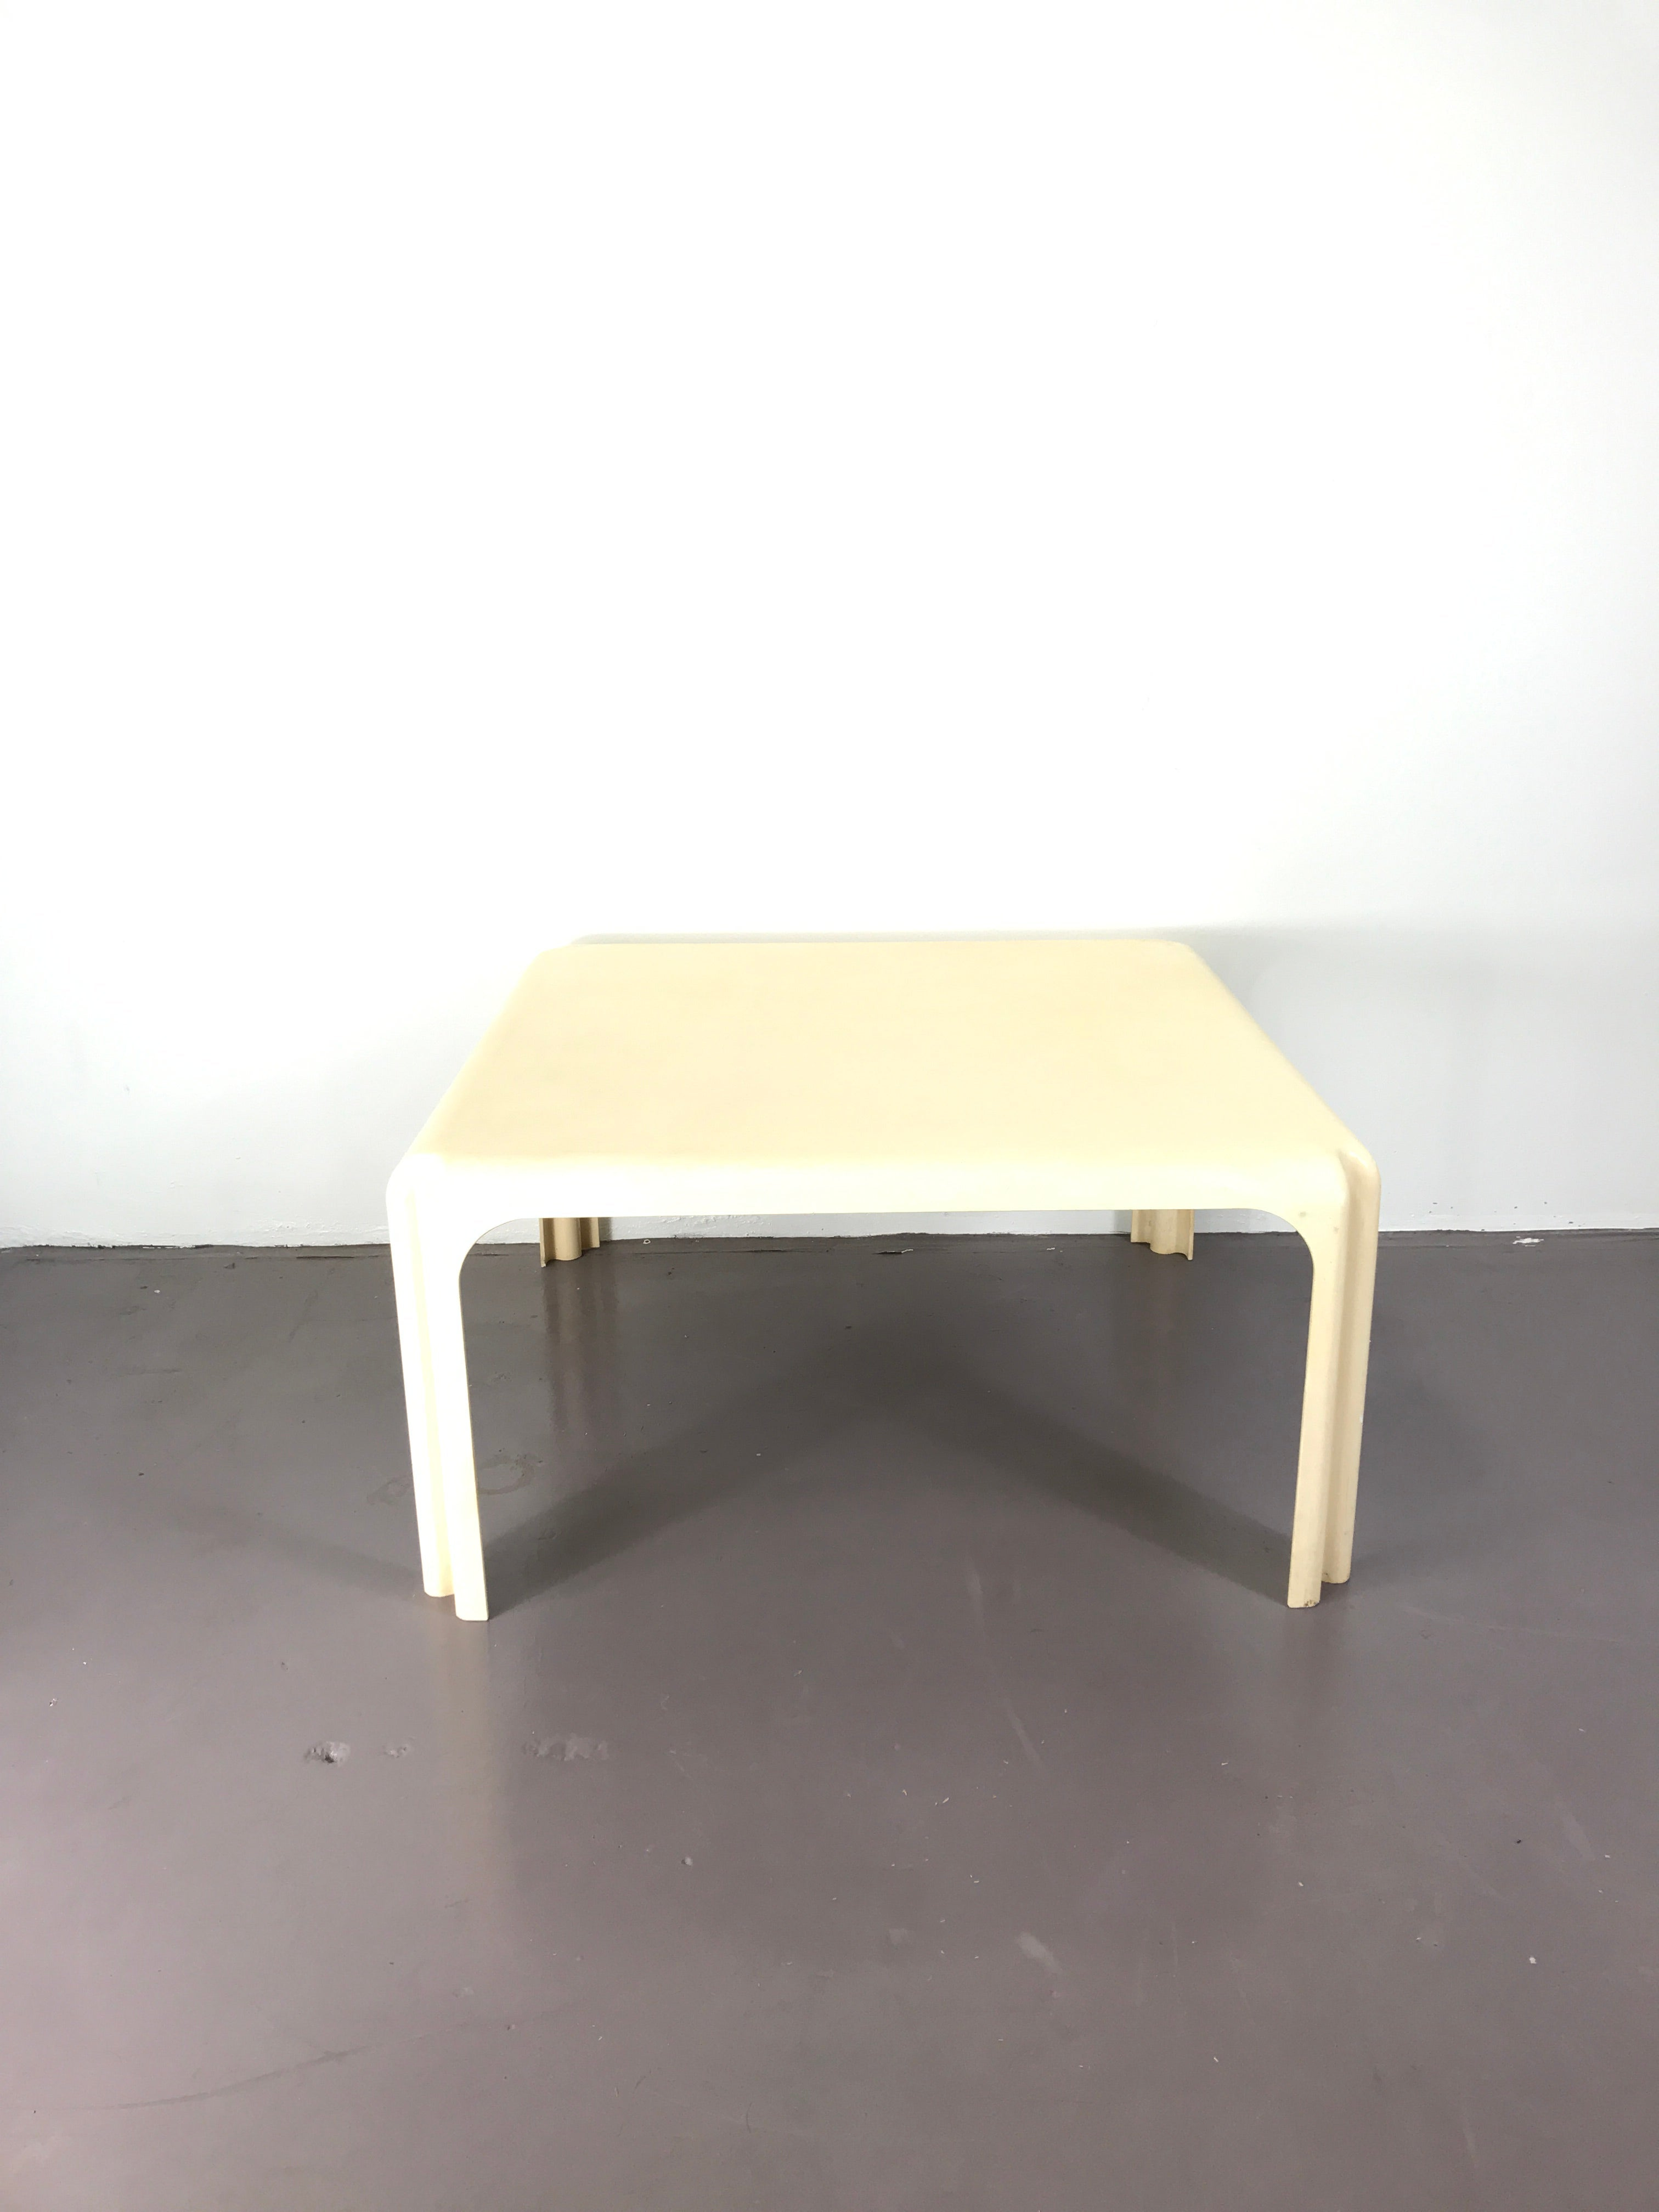 Mid-Century Modern White Acrylic Coffee Table by Vico Magistretti for Artemide